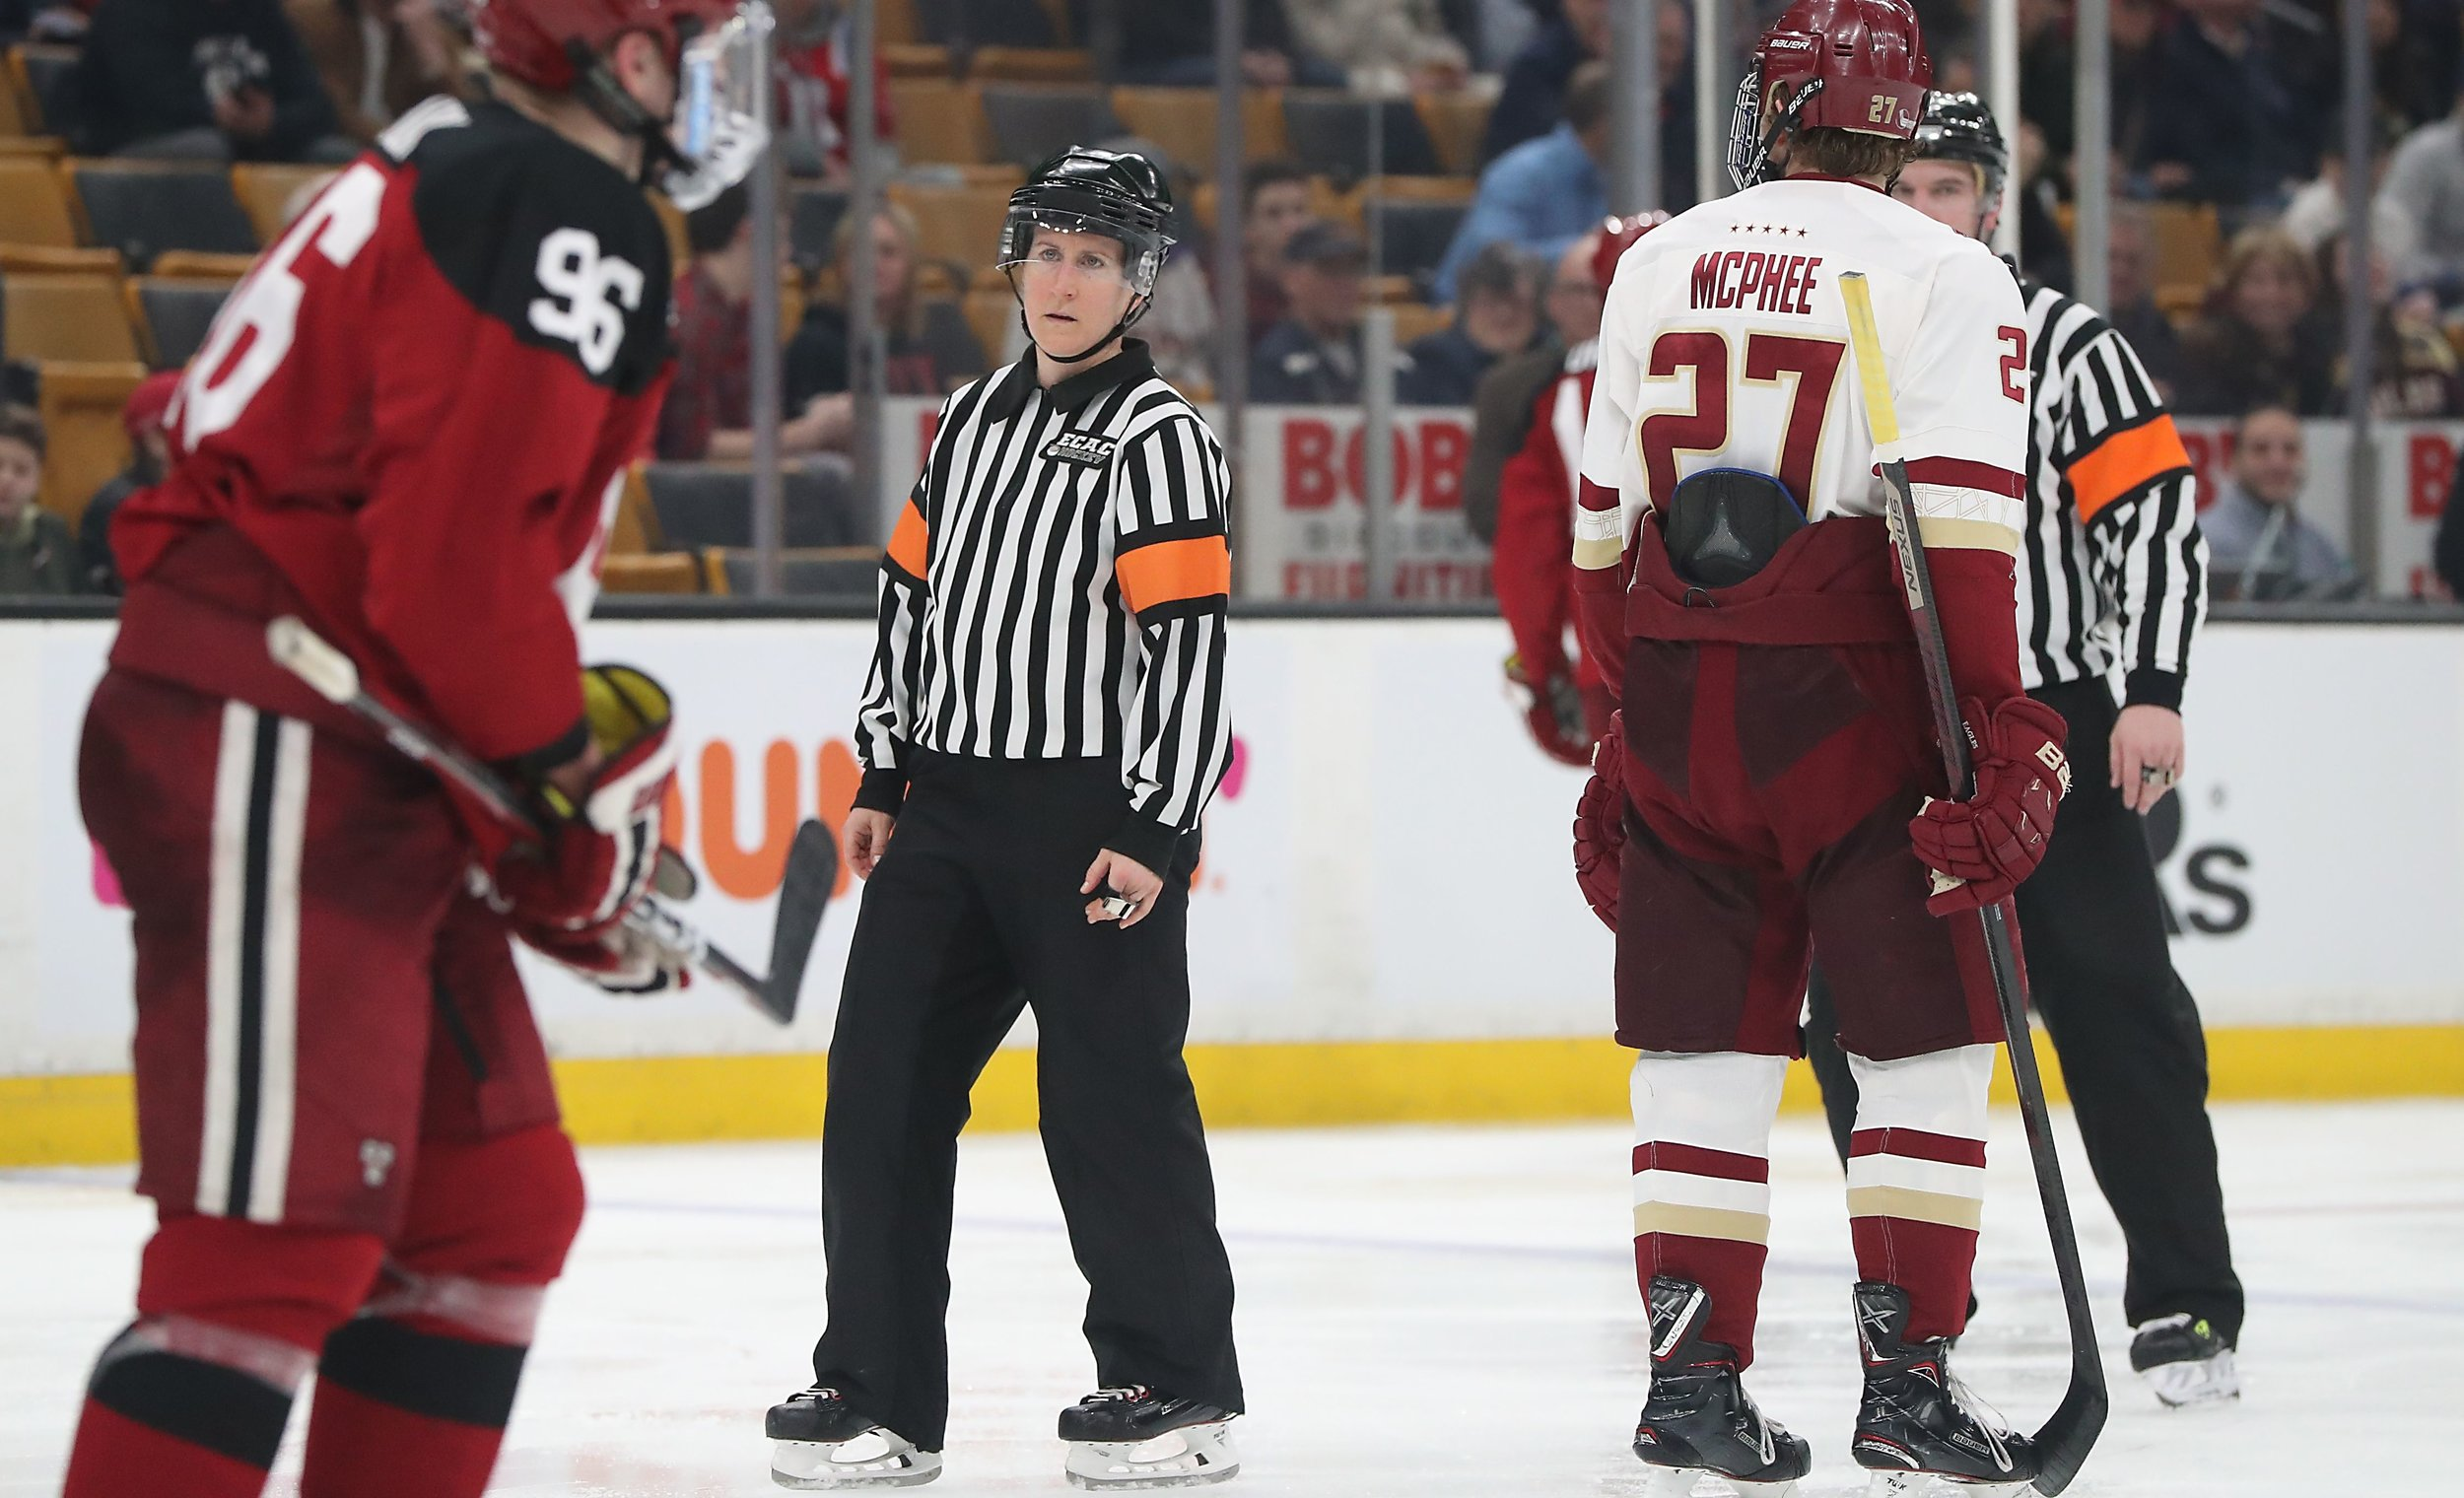 Katie Guay Makes History as First Female Official in Men's Beanpot History - https://www.usahockey.com/news_article/show/995614